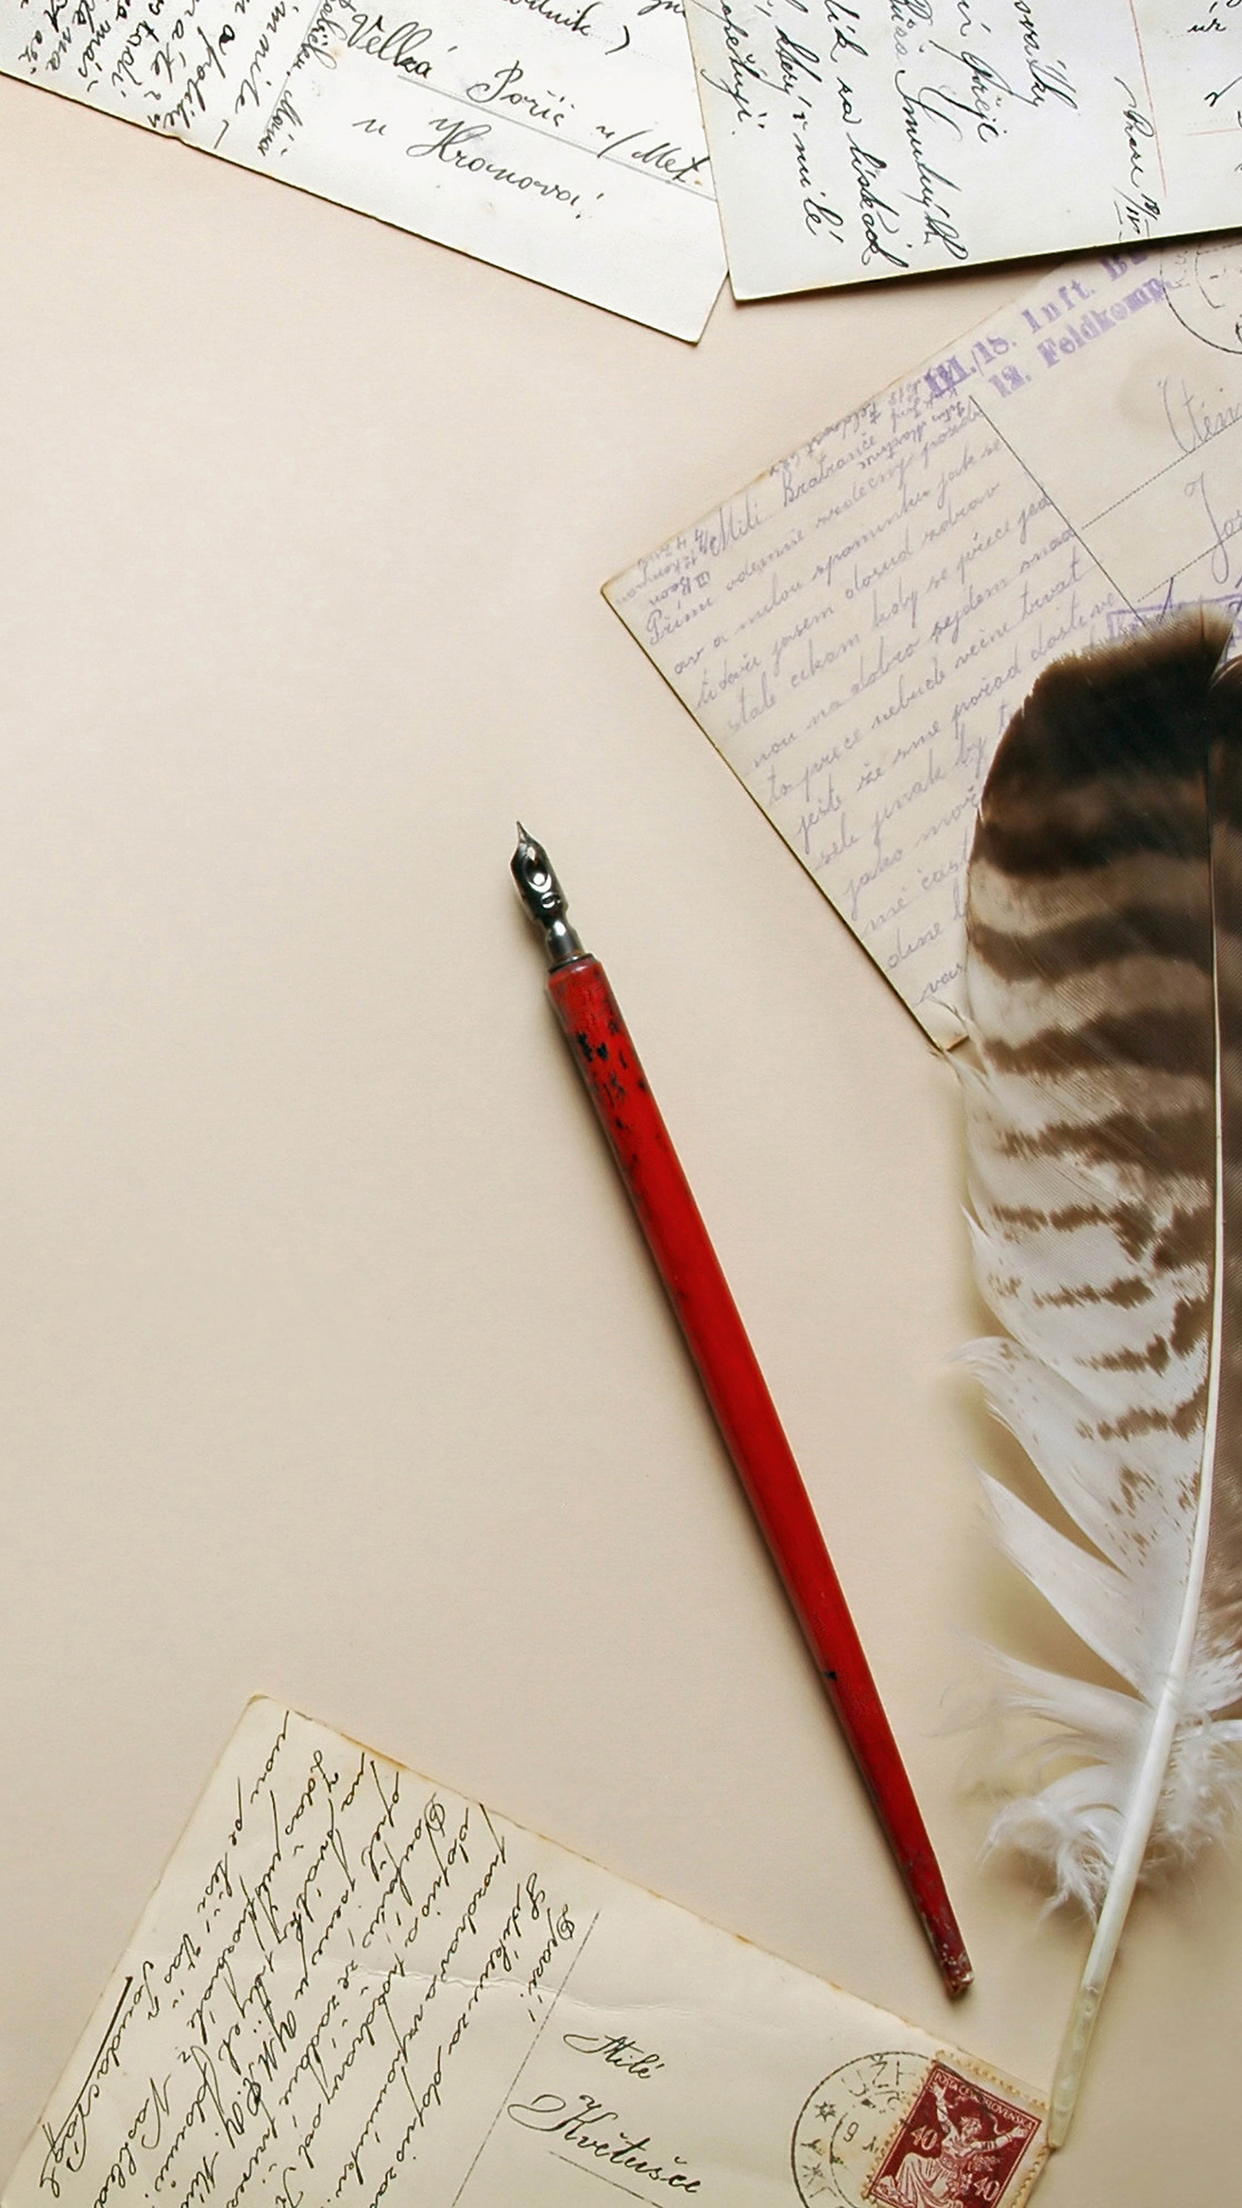 Letters Pen Feather 3Wallpapers iPhone Parallax Letters : Pen and Feather